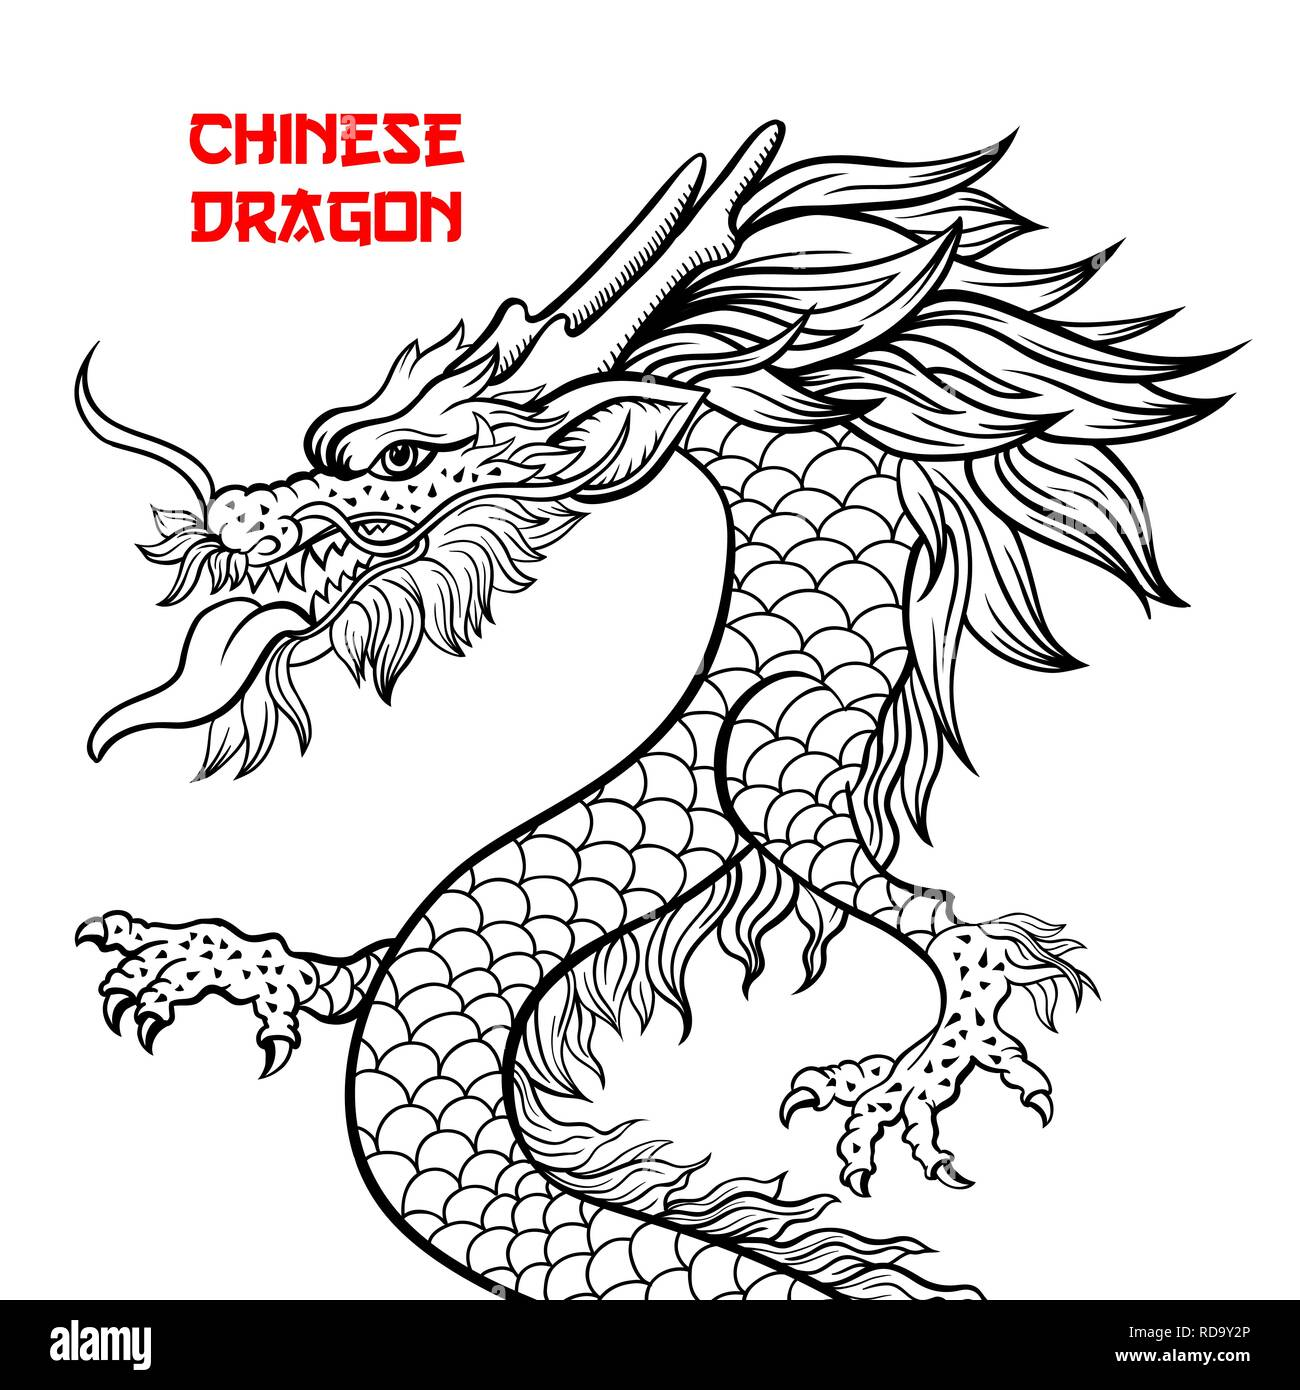 Chinese dragon hand drawn vector illustration. Mythical creature ink pen sketch. Black and white clipart. Serpent freehand drawing. Isolated monochrome mythic design element. Chinese new year poster - Stock Vector